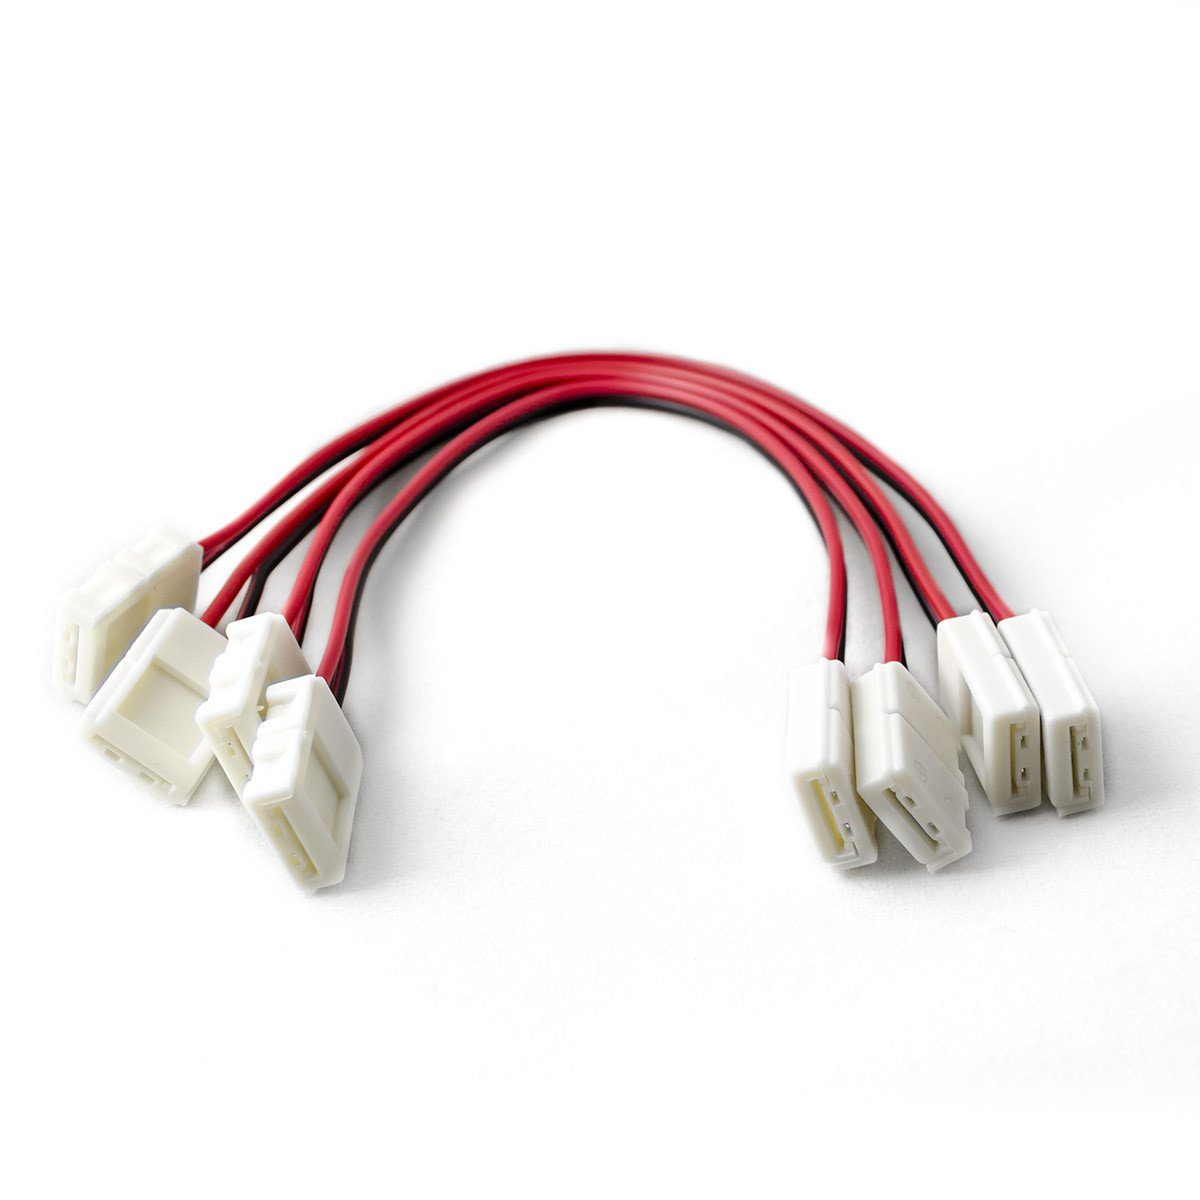 8mm (3528) Solderless LED Light Strip Connectors and Extensions : Single Color - HitLights